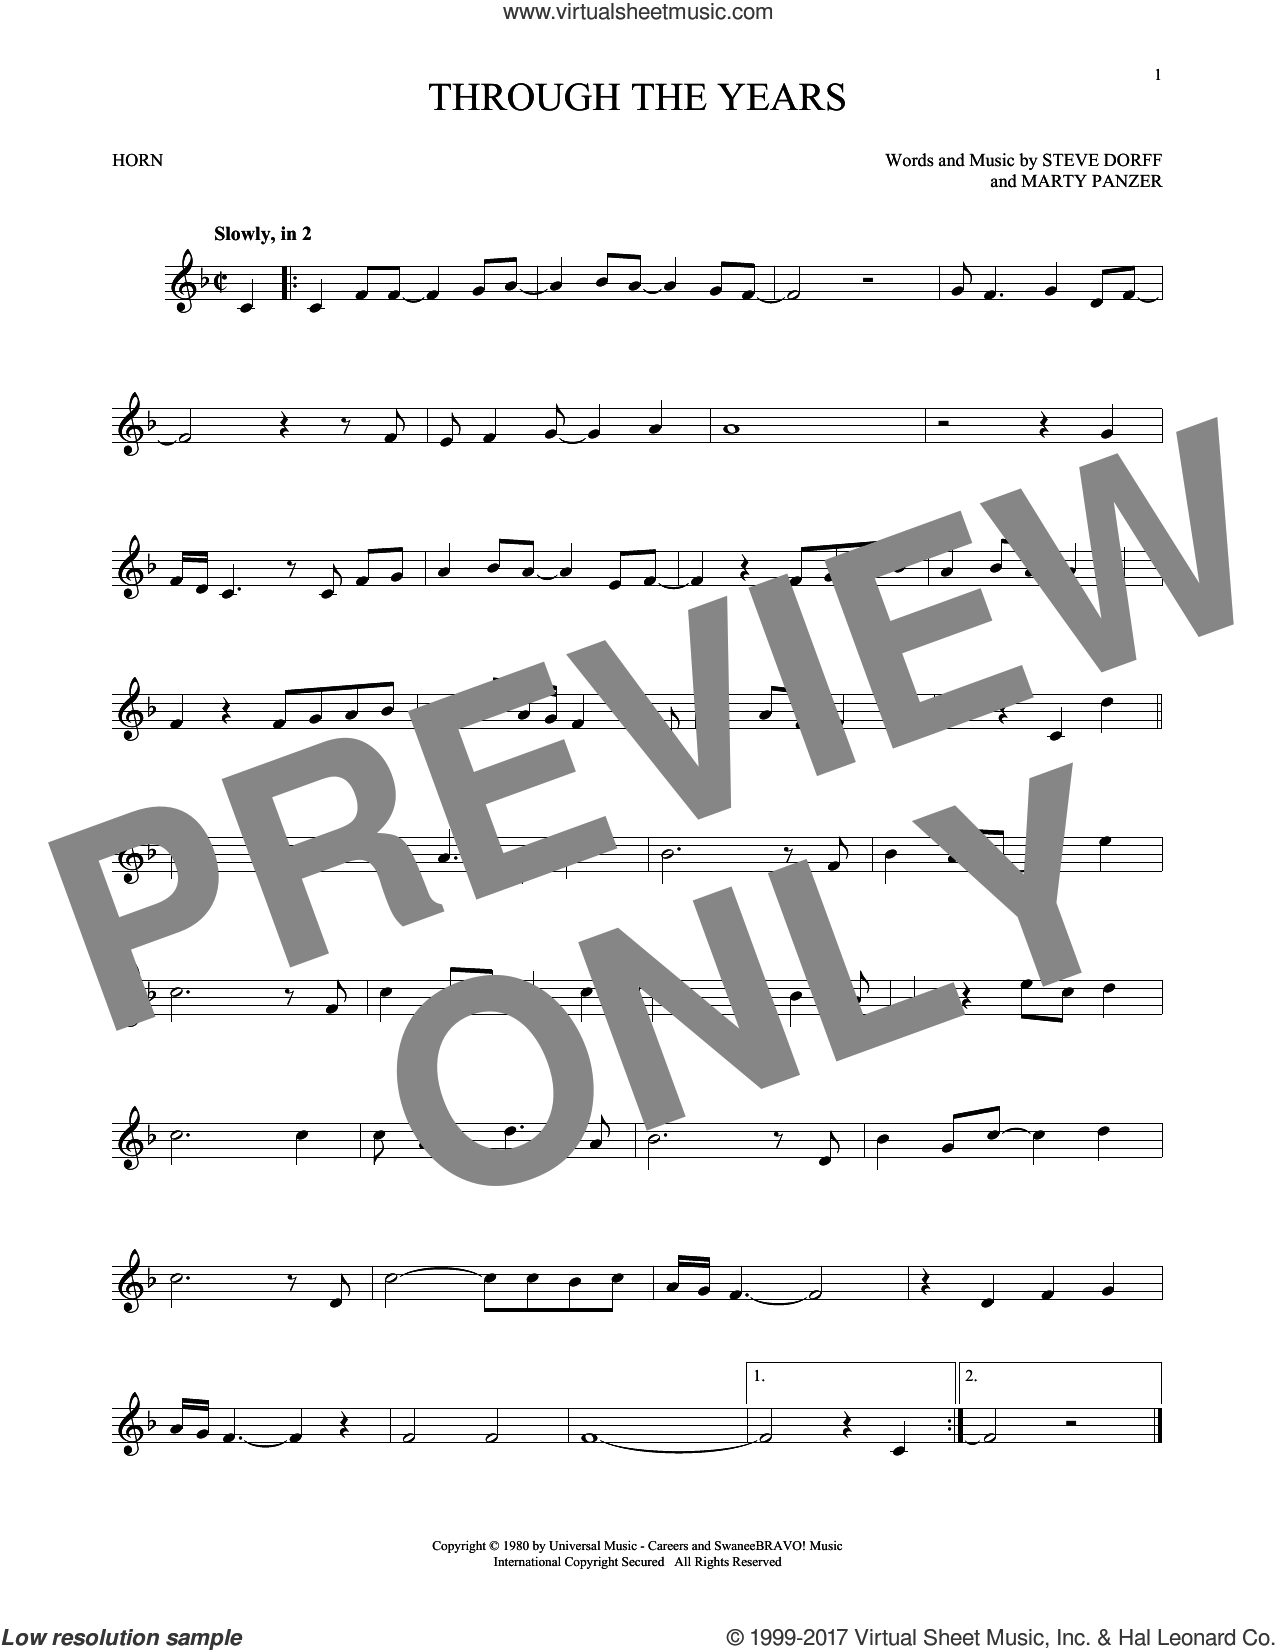 Through The Years sheet music for horn solo by Kenny Rogers, Marty Panzer and Steve Dorff, intermediate skill level